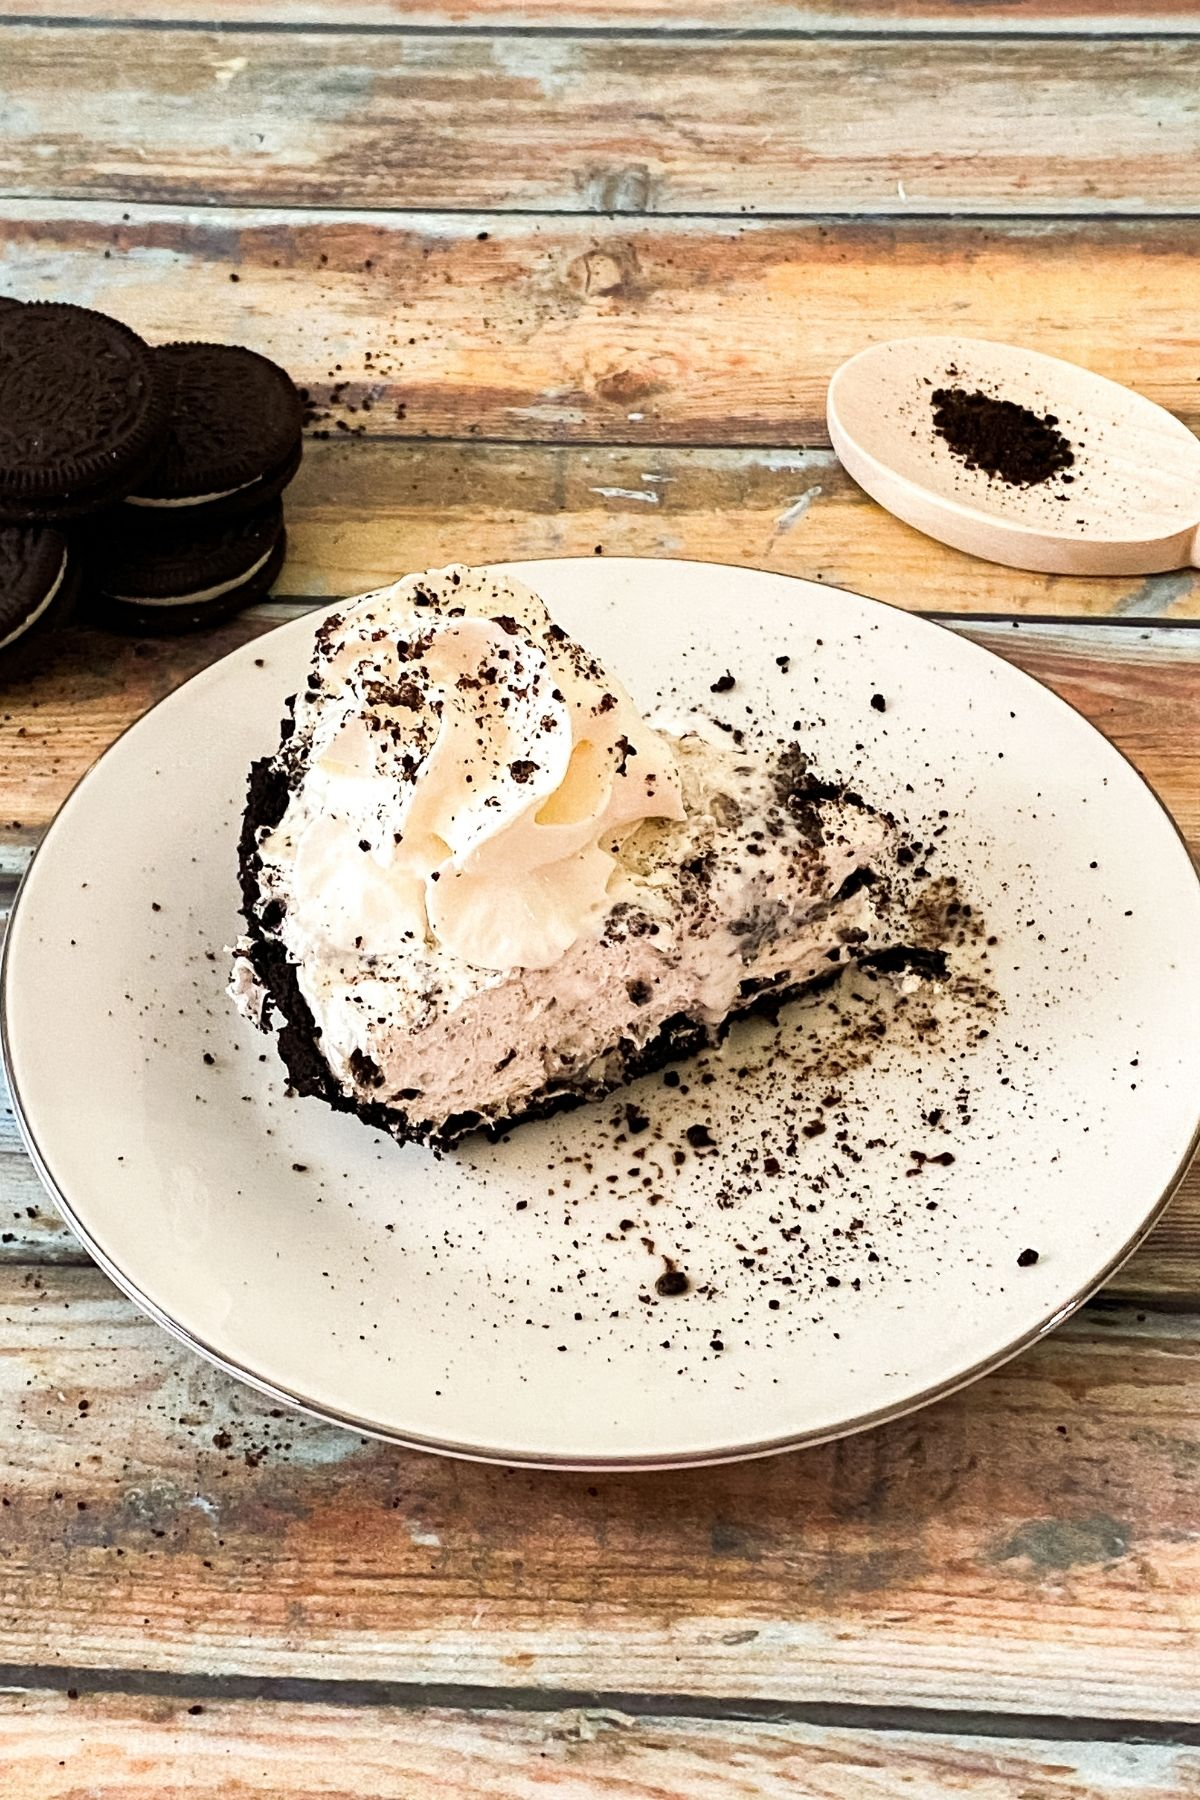 Slice of Oreo cheesecake on white plate